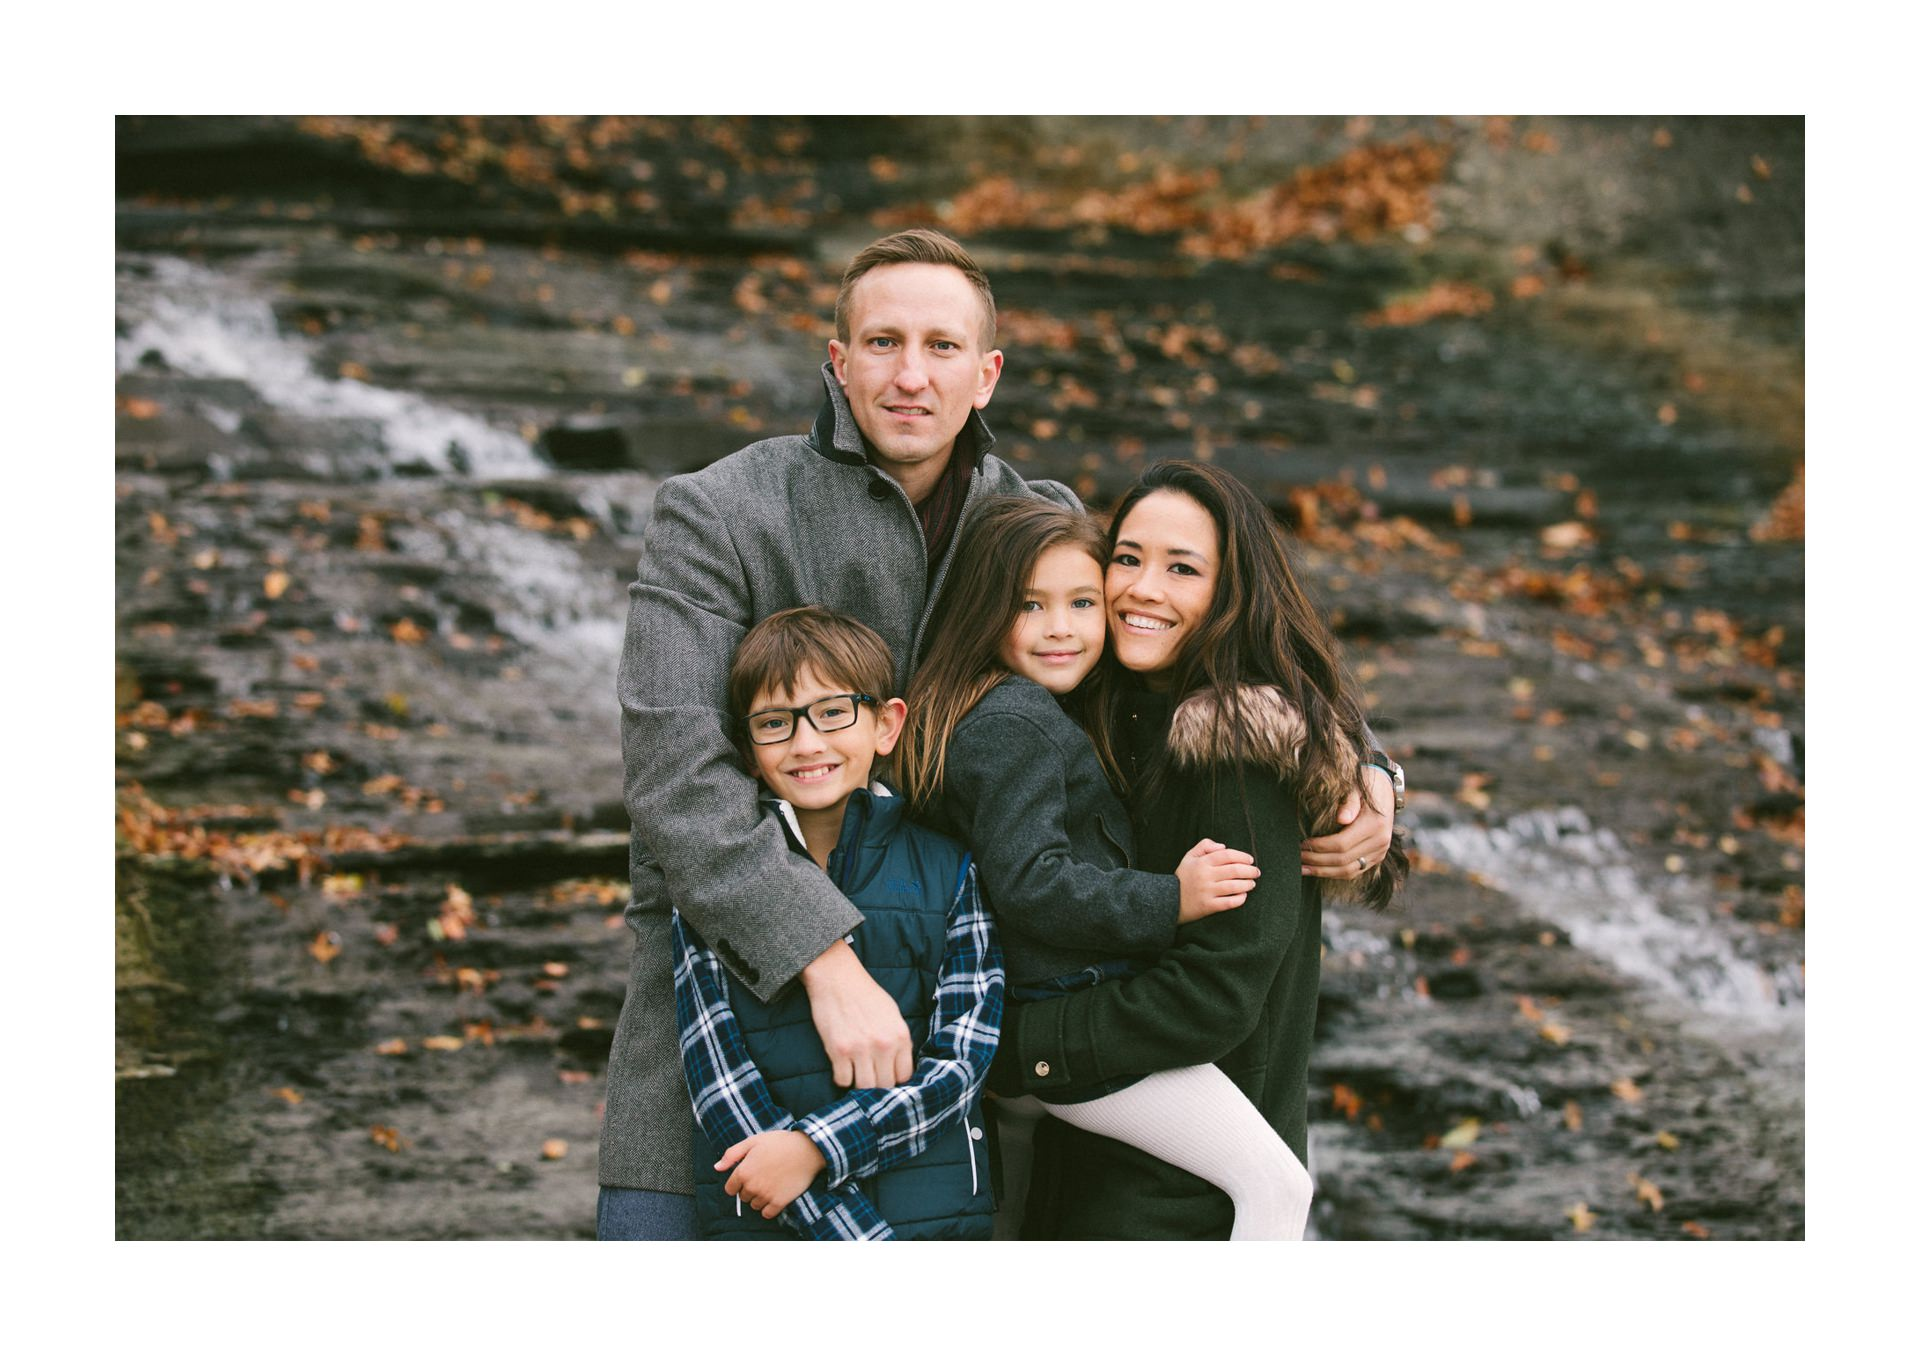 Westlake Ohio Family Portrait Photographer The Roths 61.jpg